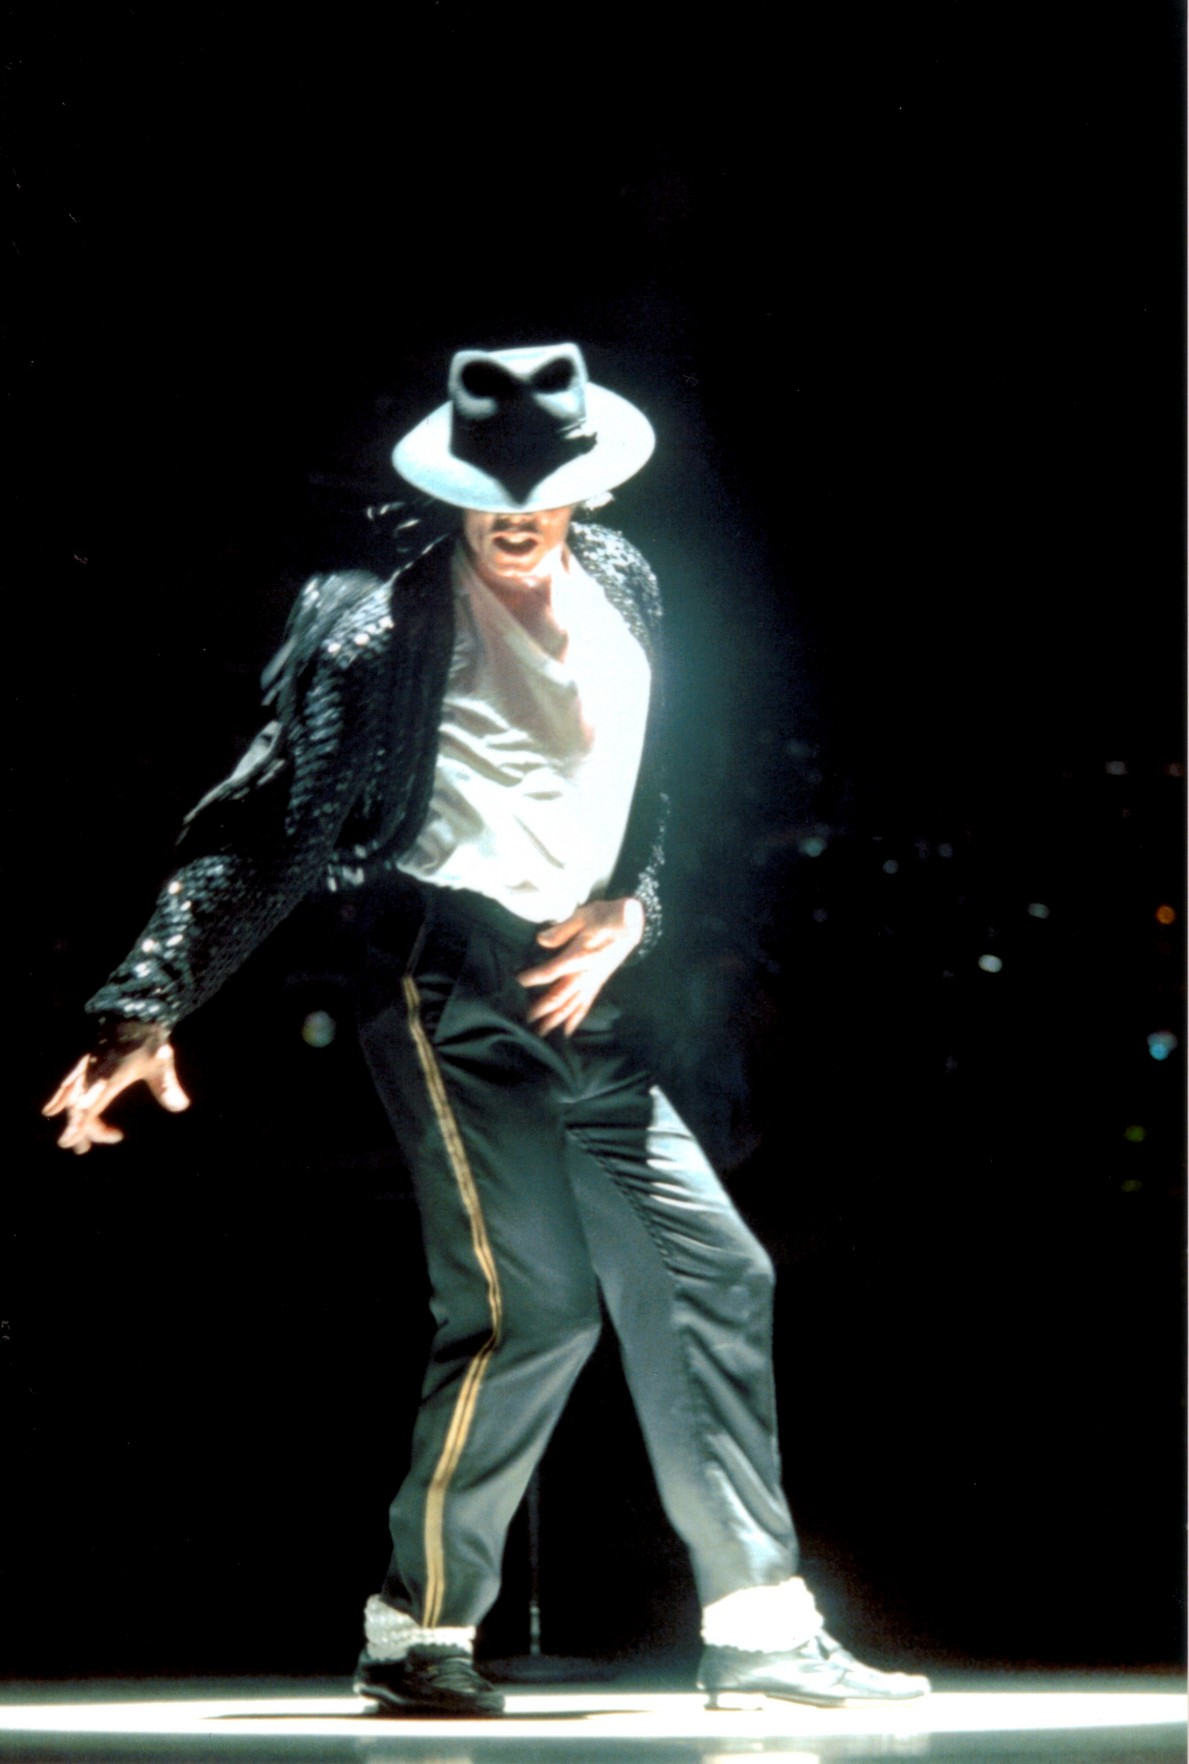 Michael-Jackson-wallpaper-wp421280